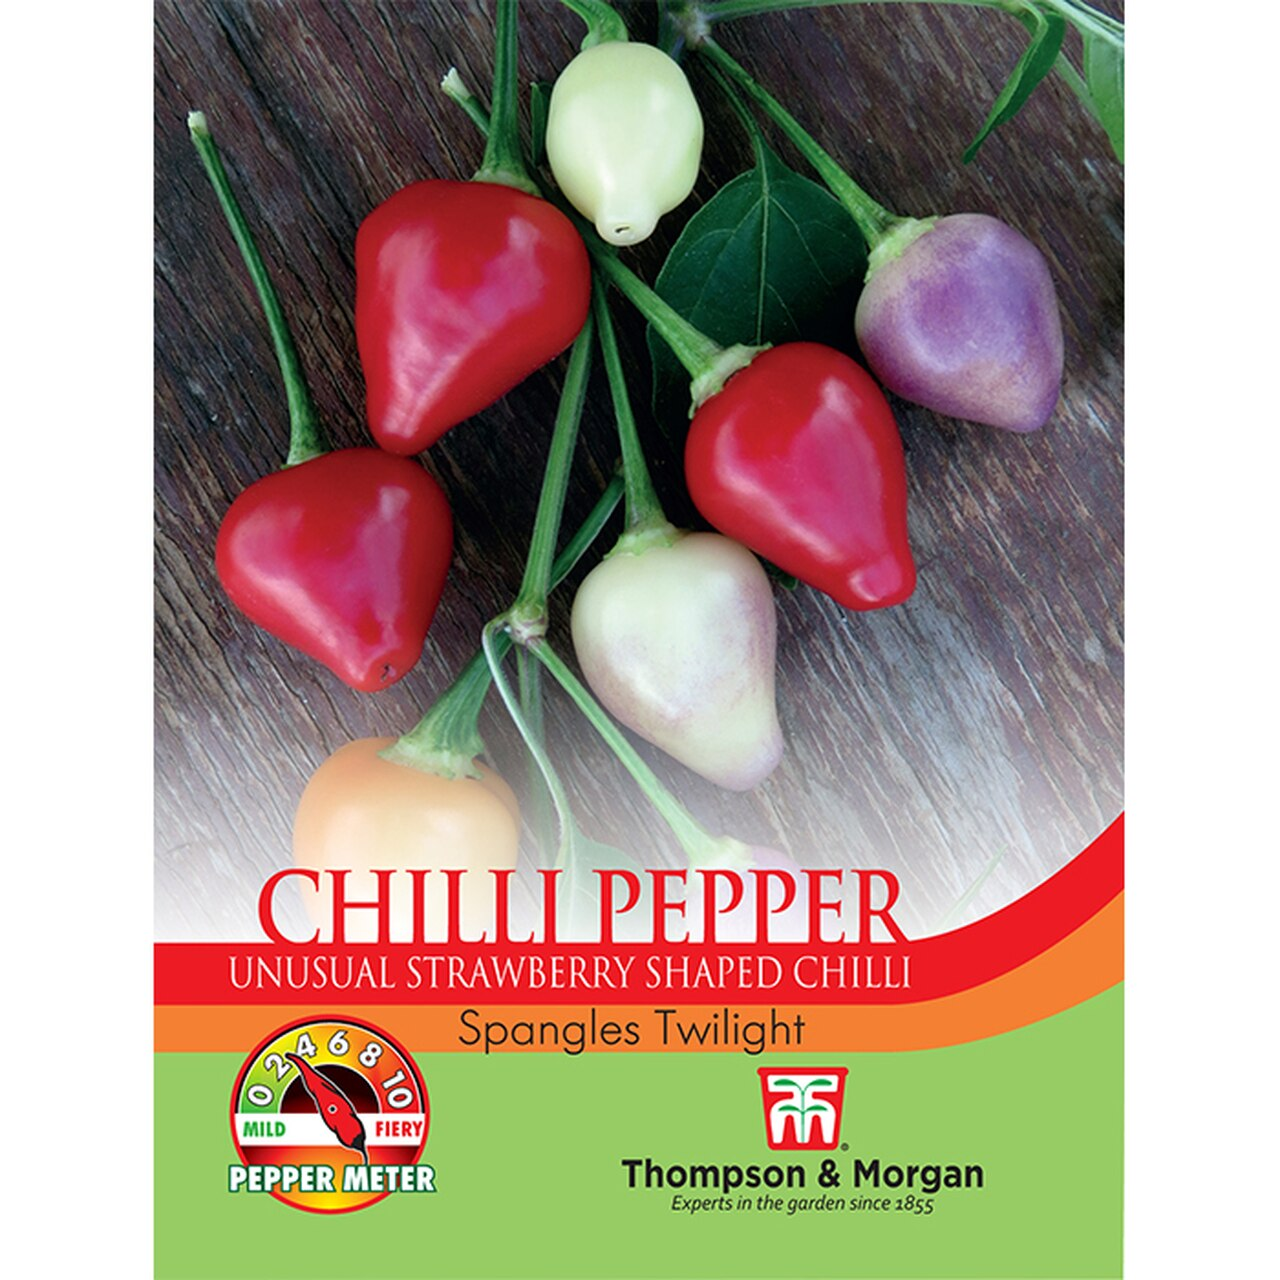 Chilli Pepper Spangles Twilight